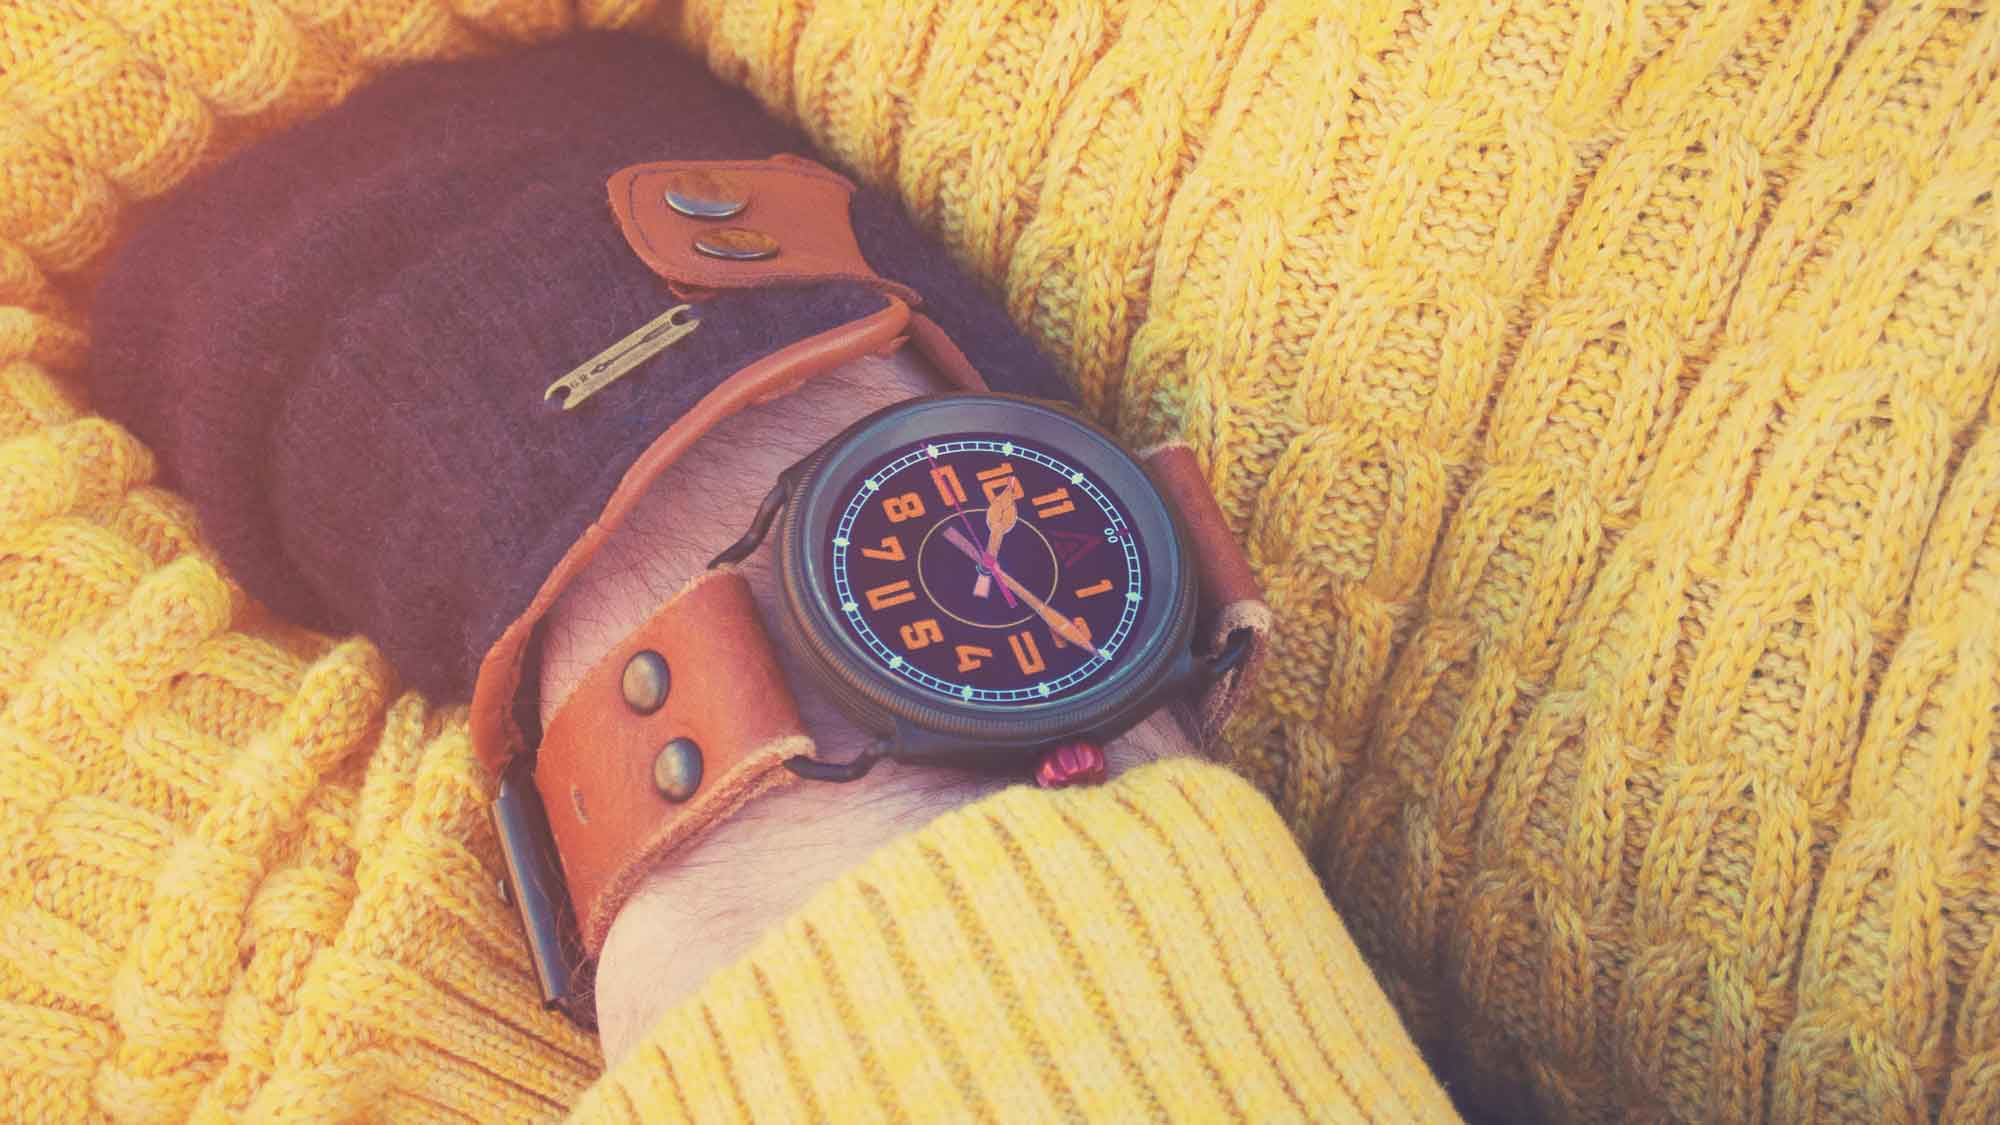 trench style watch no 1914 black wt author wrist shot yellow jumper